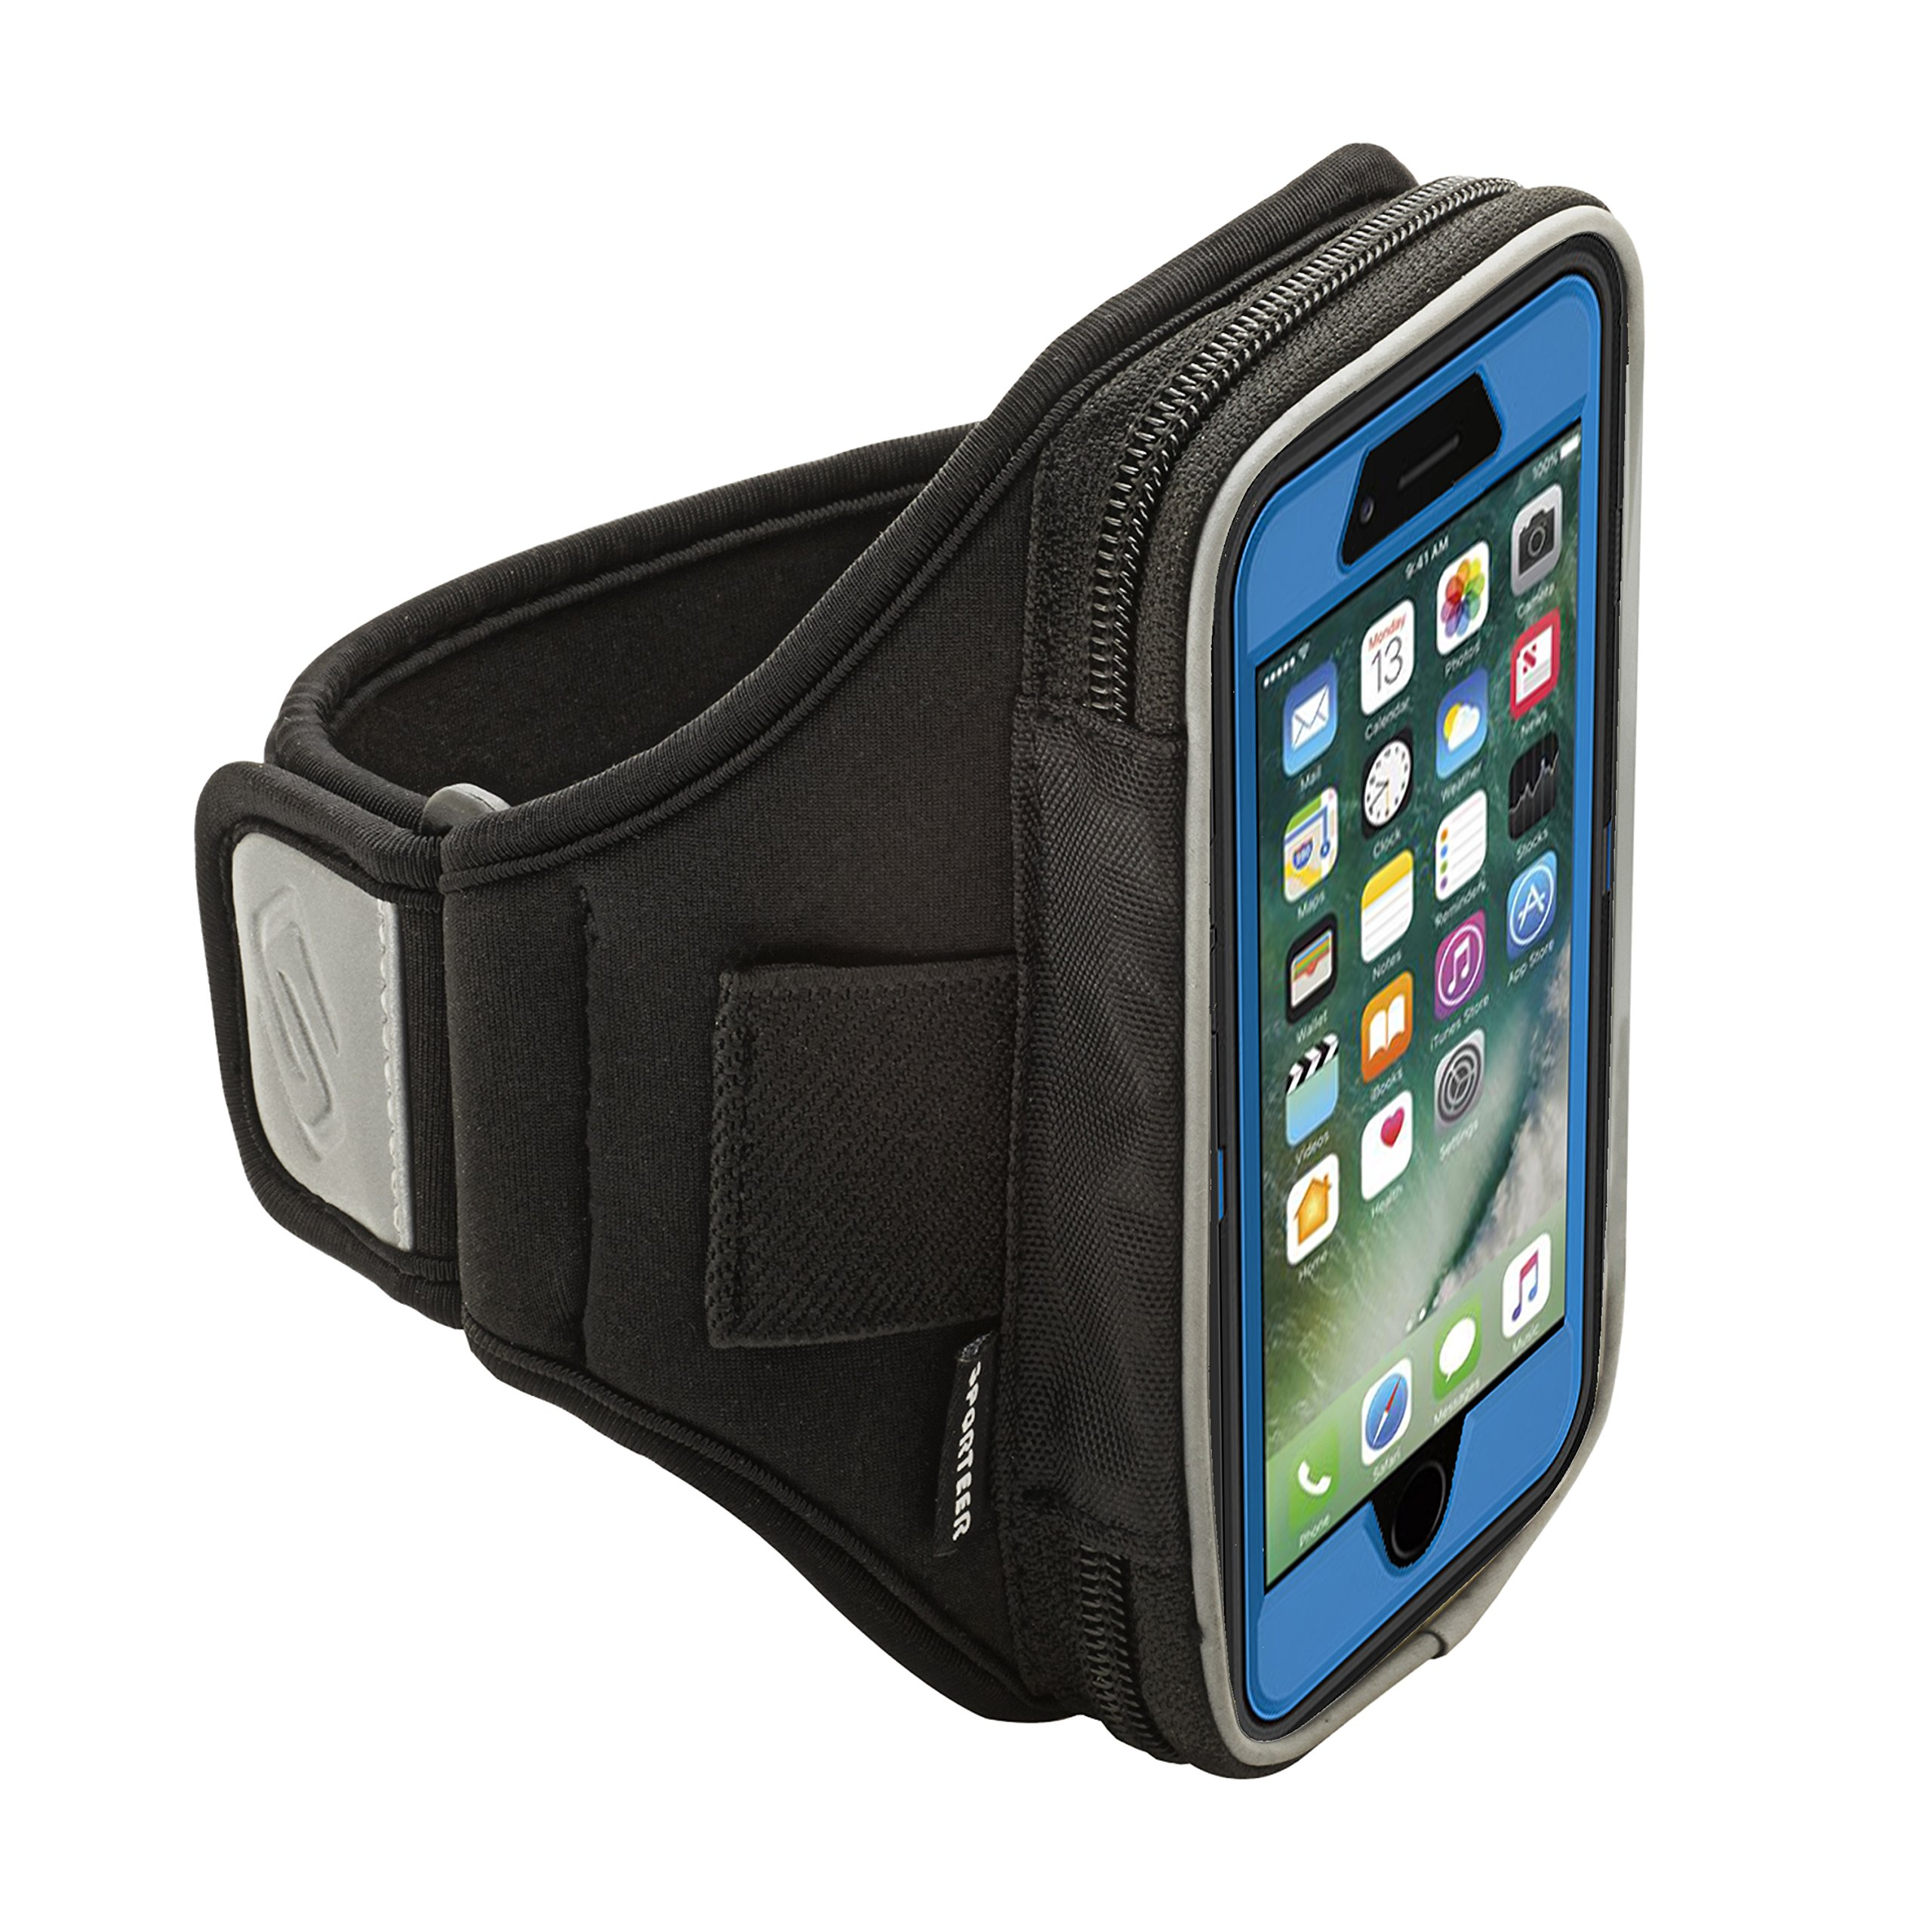 Sporteer Velocity V6 Armband for iPhone Xs, iPhone X, iPhone 8, iPhone 7, iPhone 6S and iPhone 6 with OtterBox Cases and Other Cases & Battery Cases - Strap Size Medium/Large (M/L) (Black)